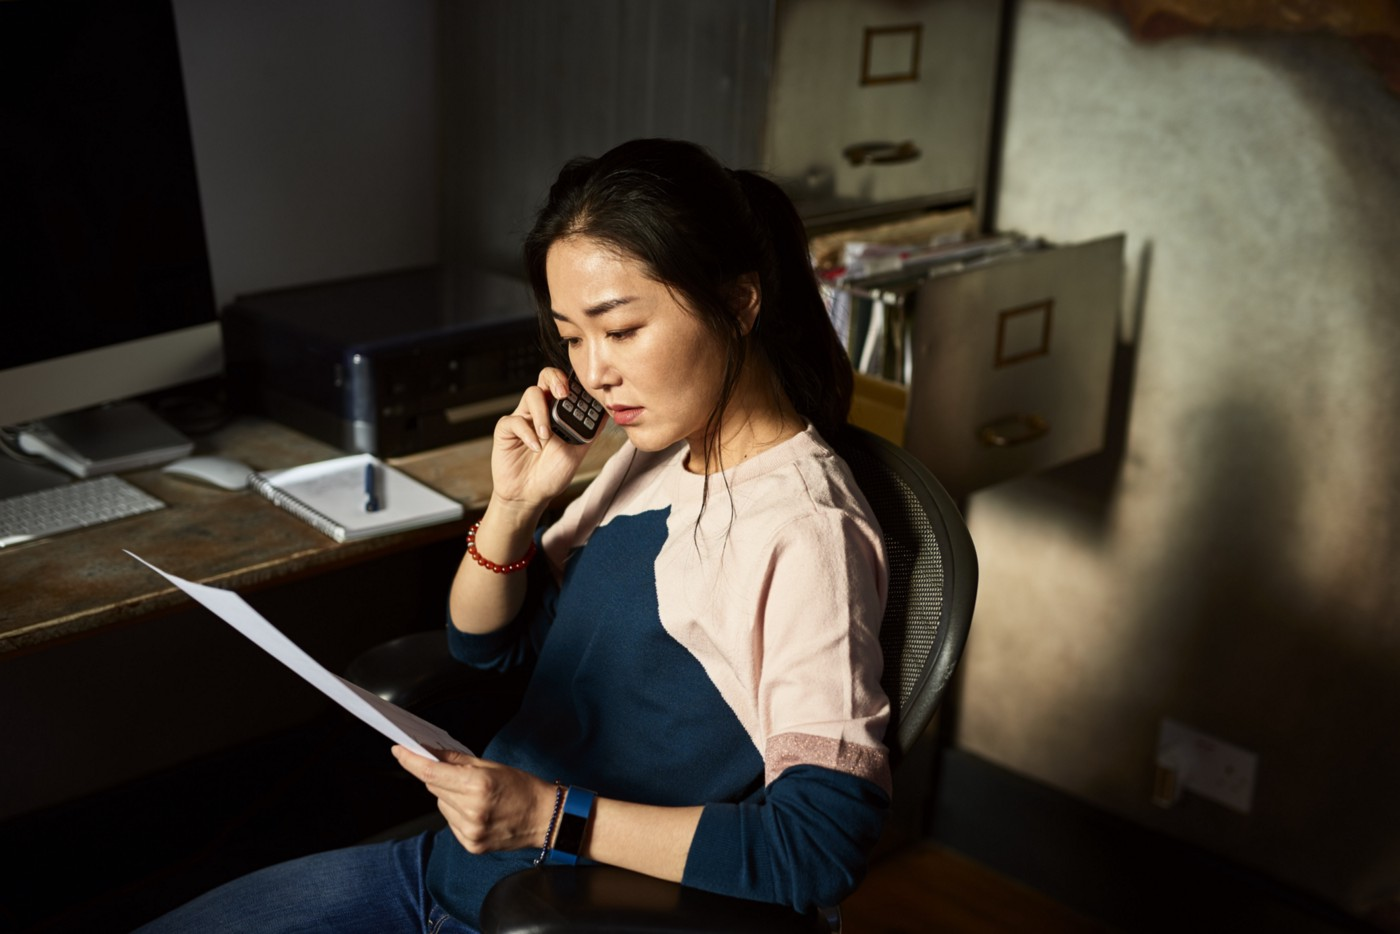 Woman on the phone while holding a piece of paper.